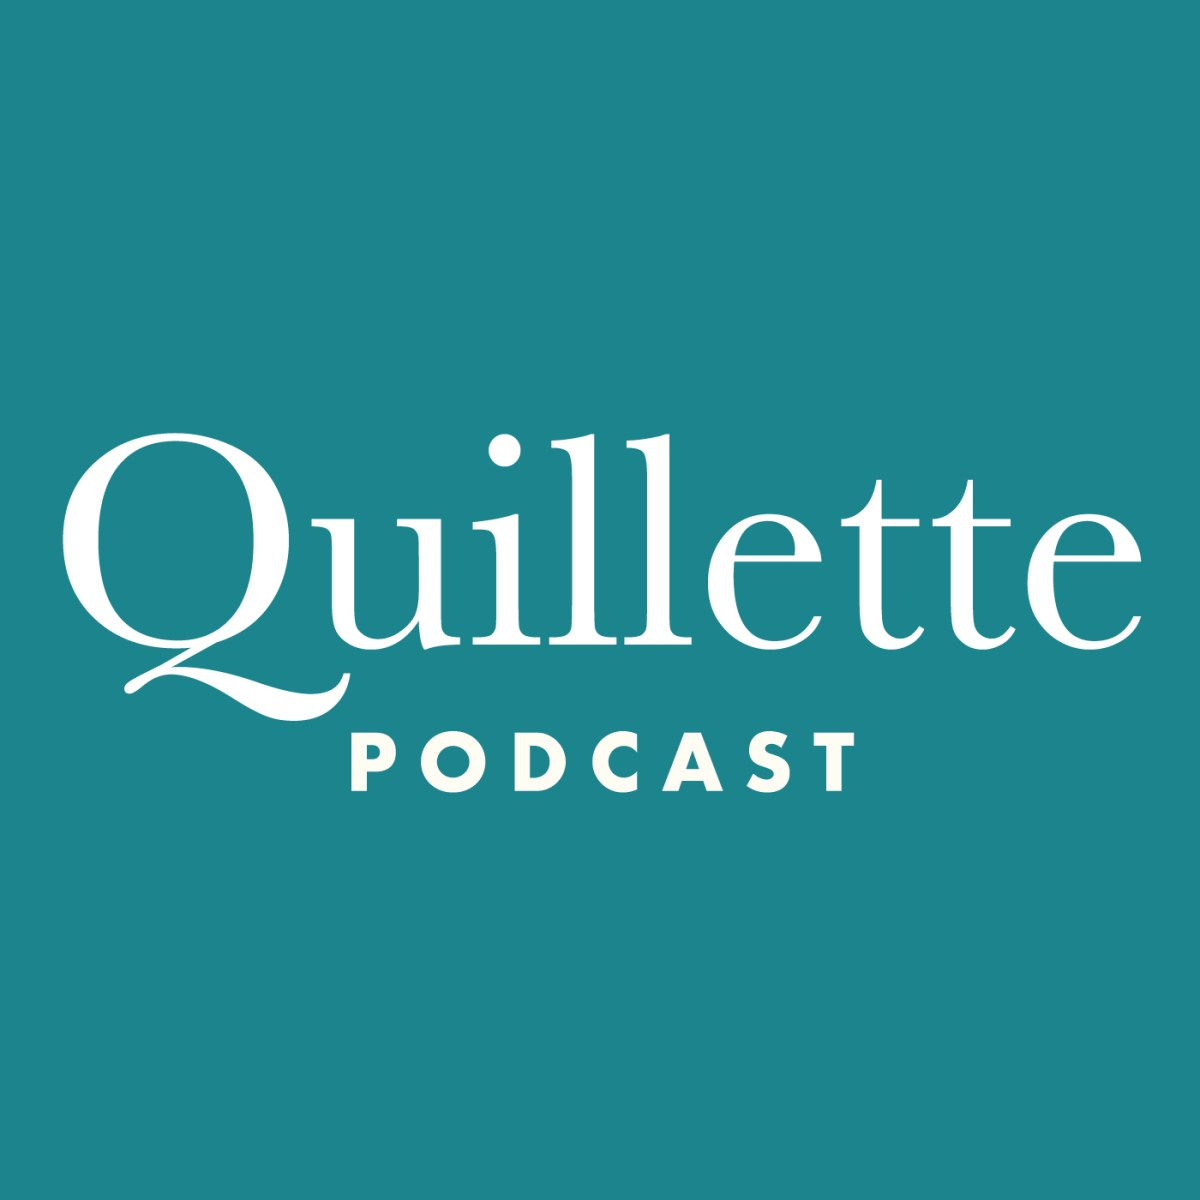 Quillette Podcast 5 - Heather Mac Donald on the Free Speech Crisis in the Academy